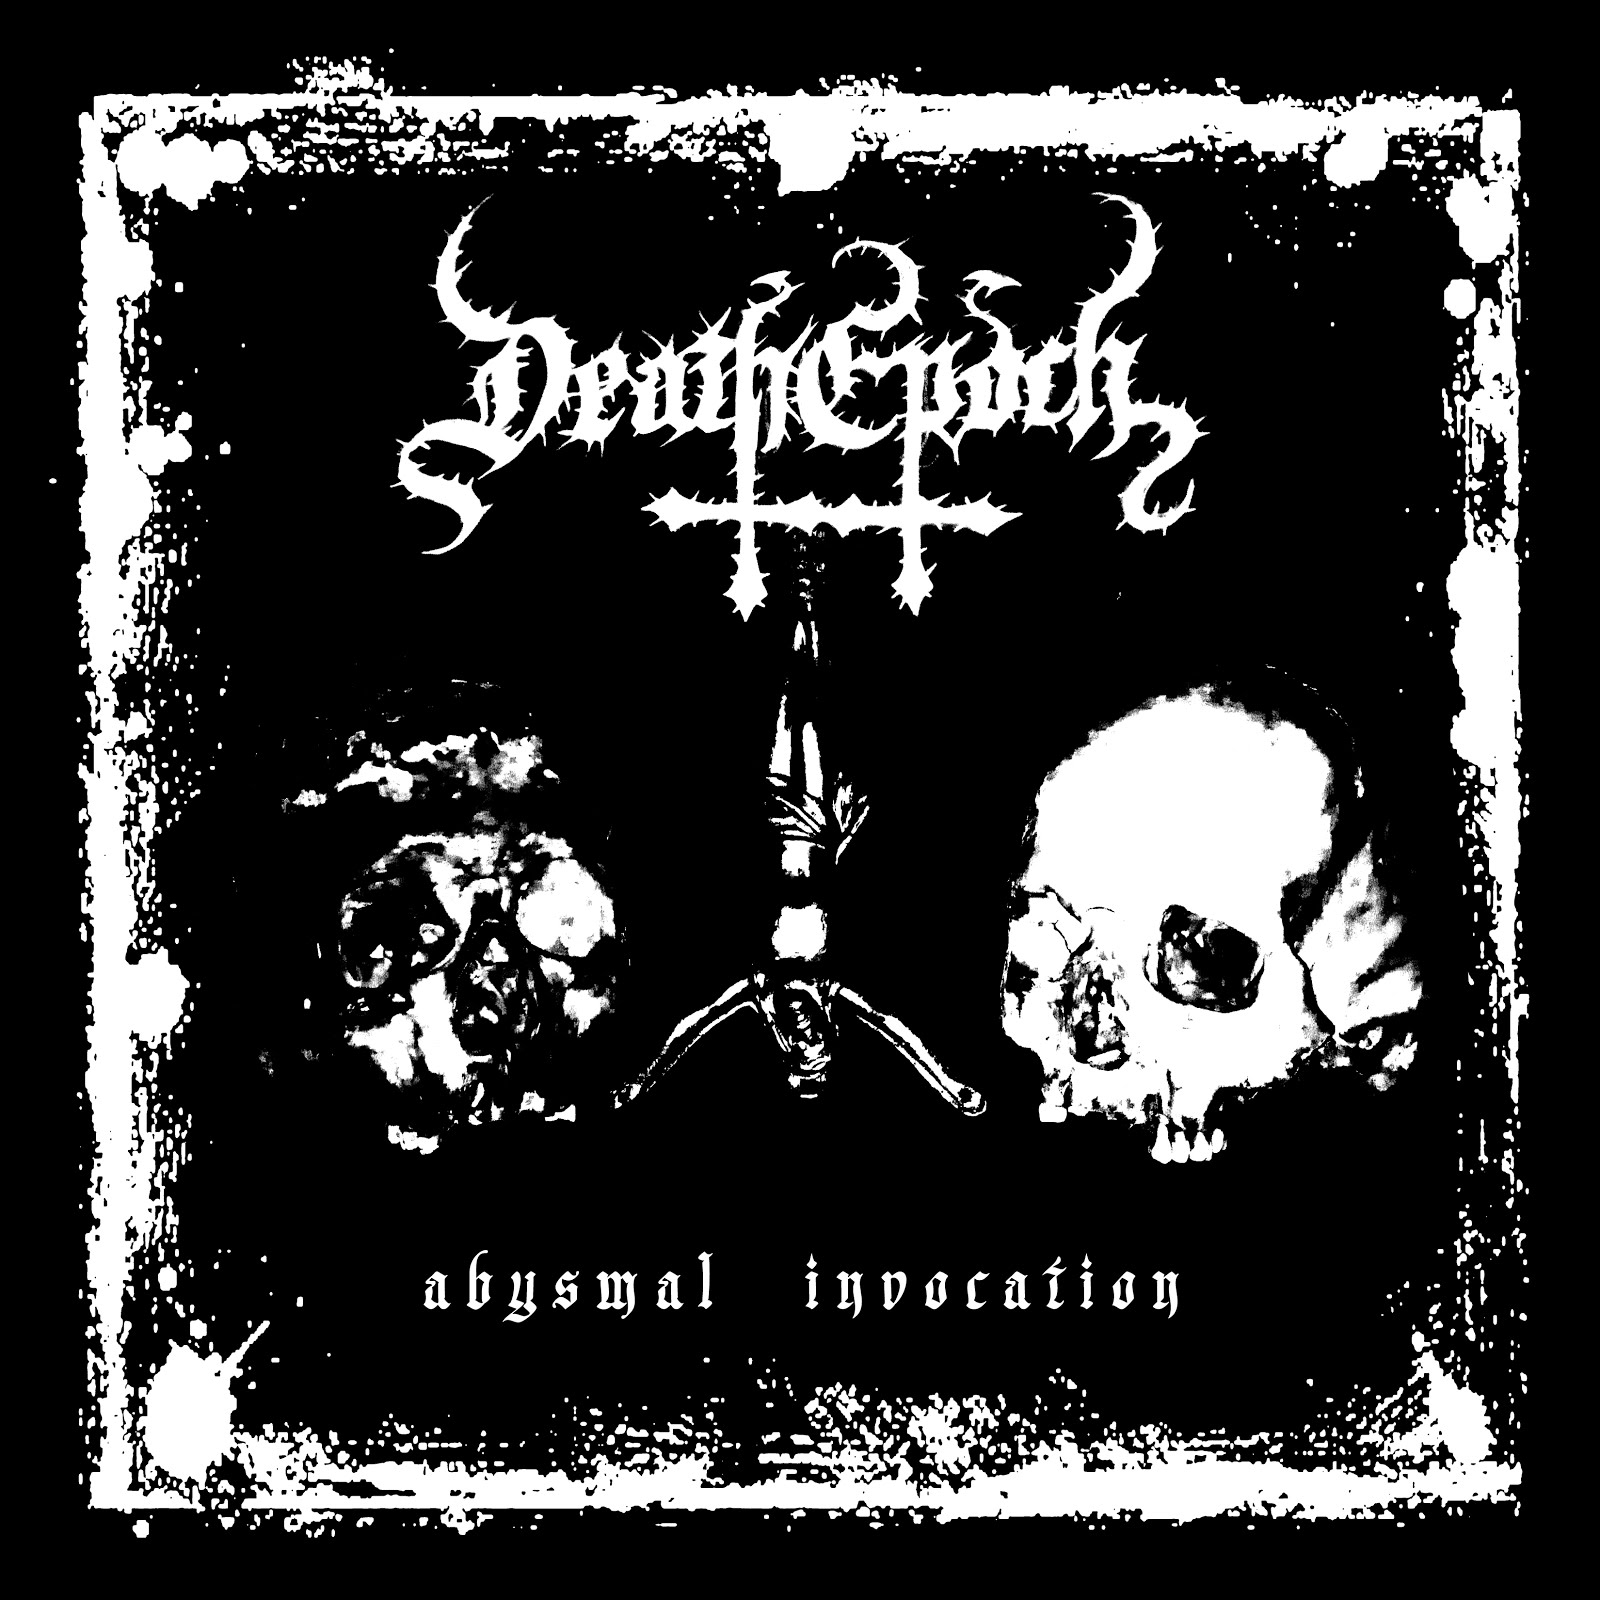 DeathEpoch - Abysmal Invocation - Press Release + Multiple Track Stream.